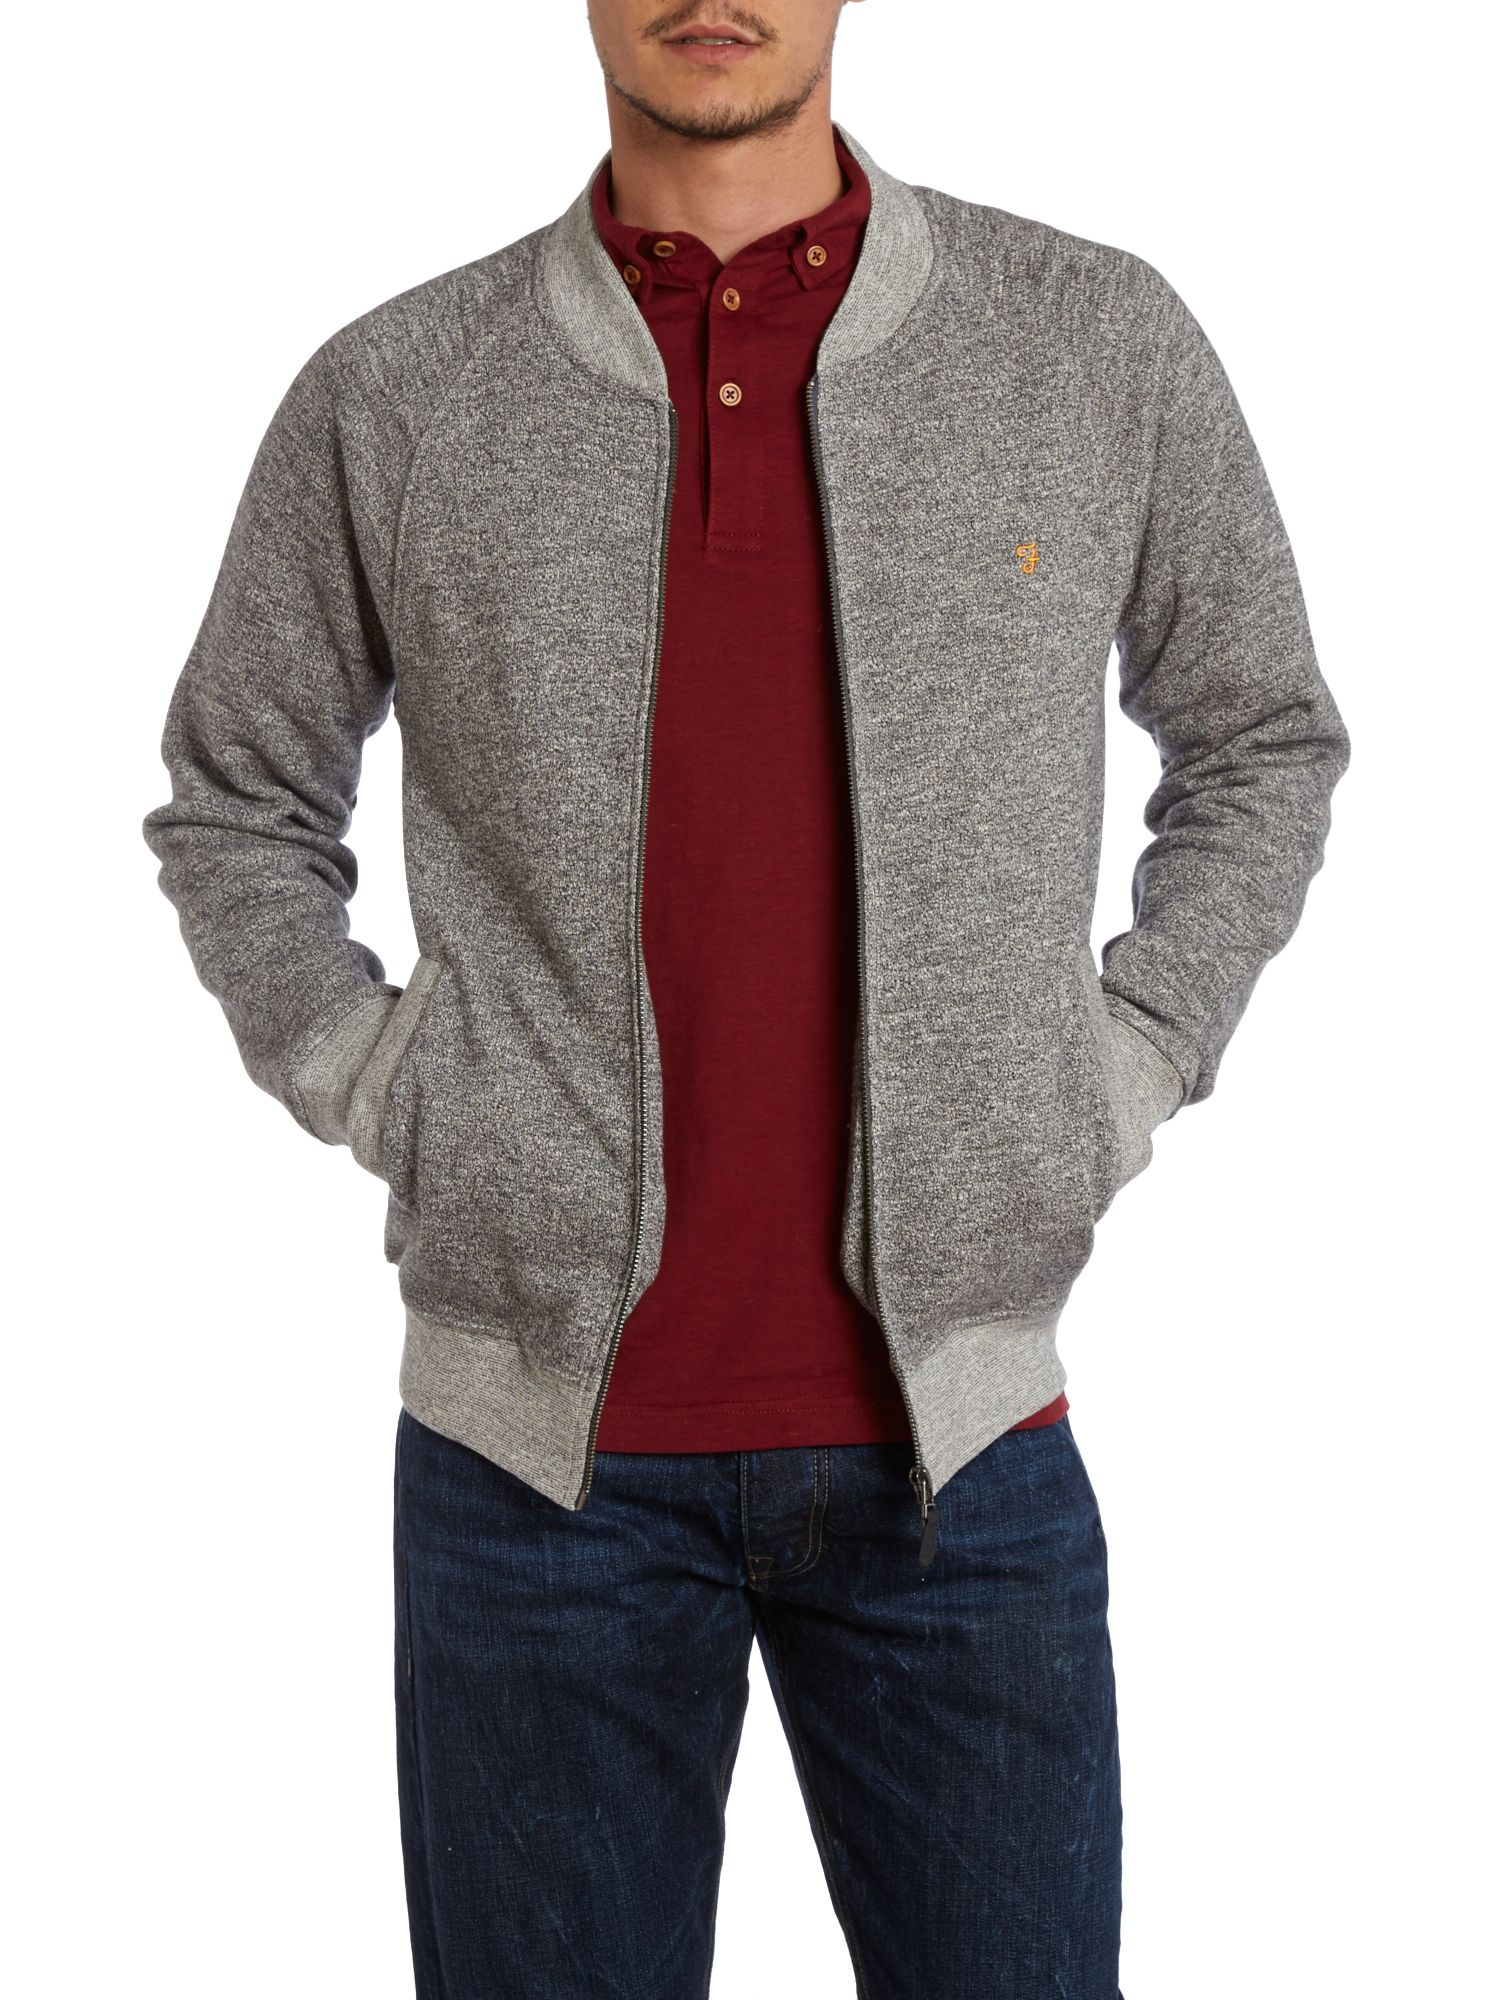 Bardell two pocket zip up bomber sweatshirt